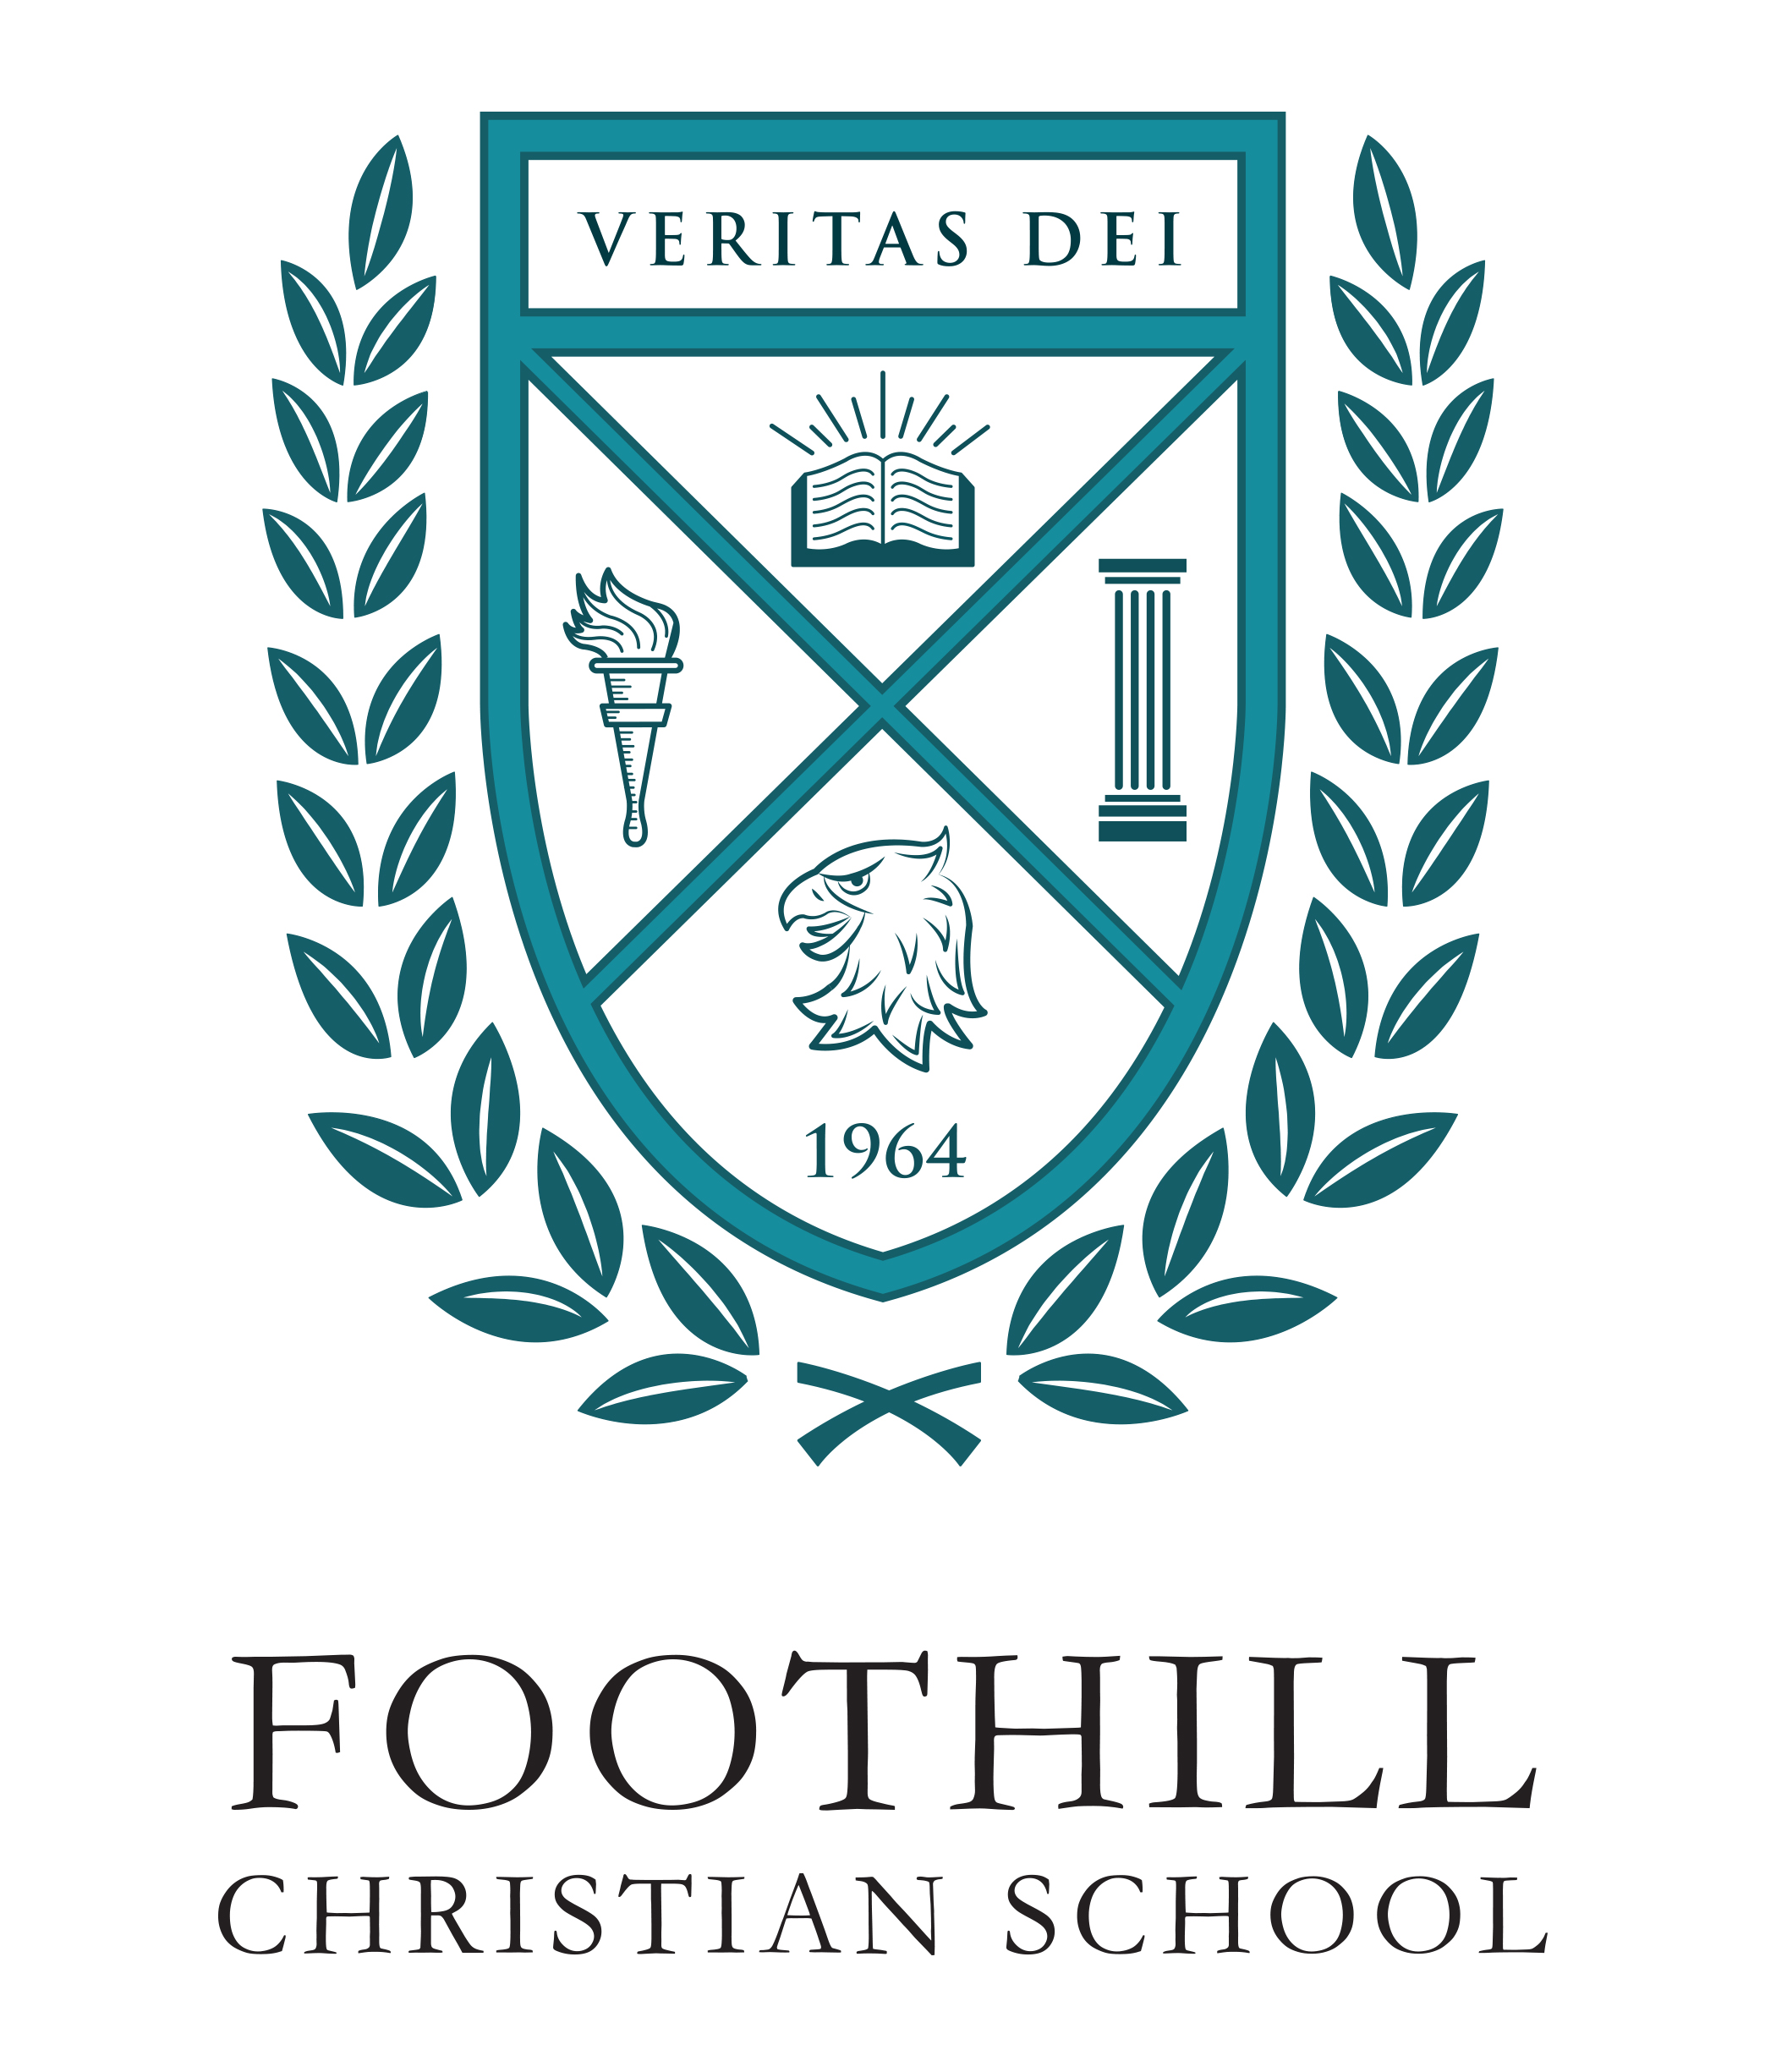 The Crest Foothill Christian School